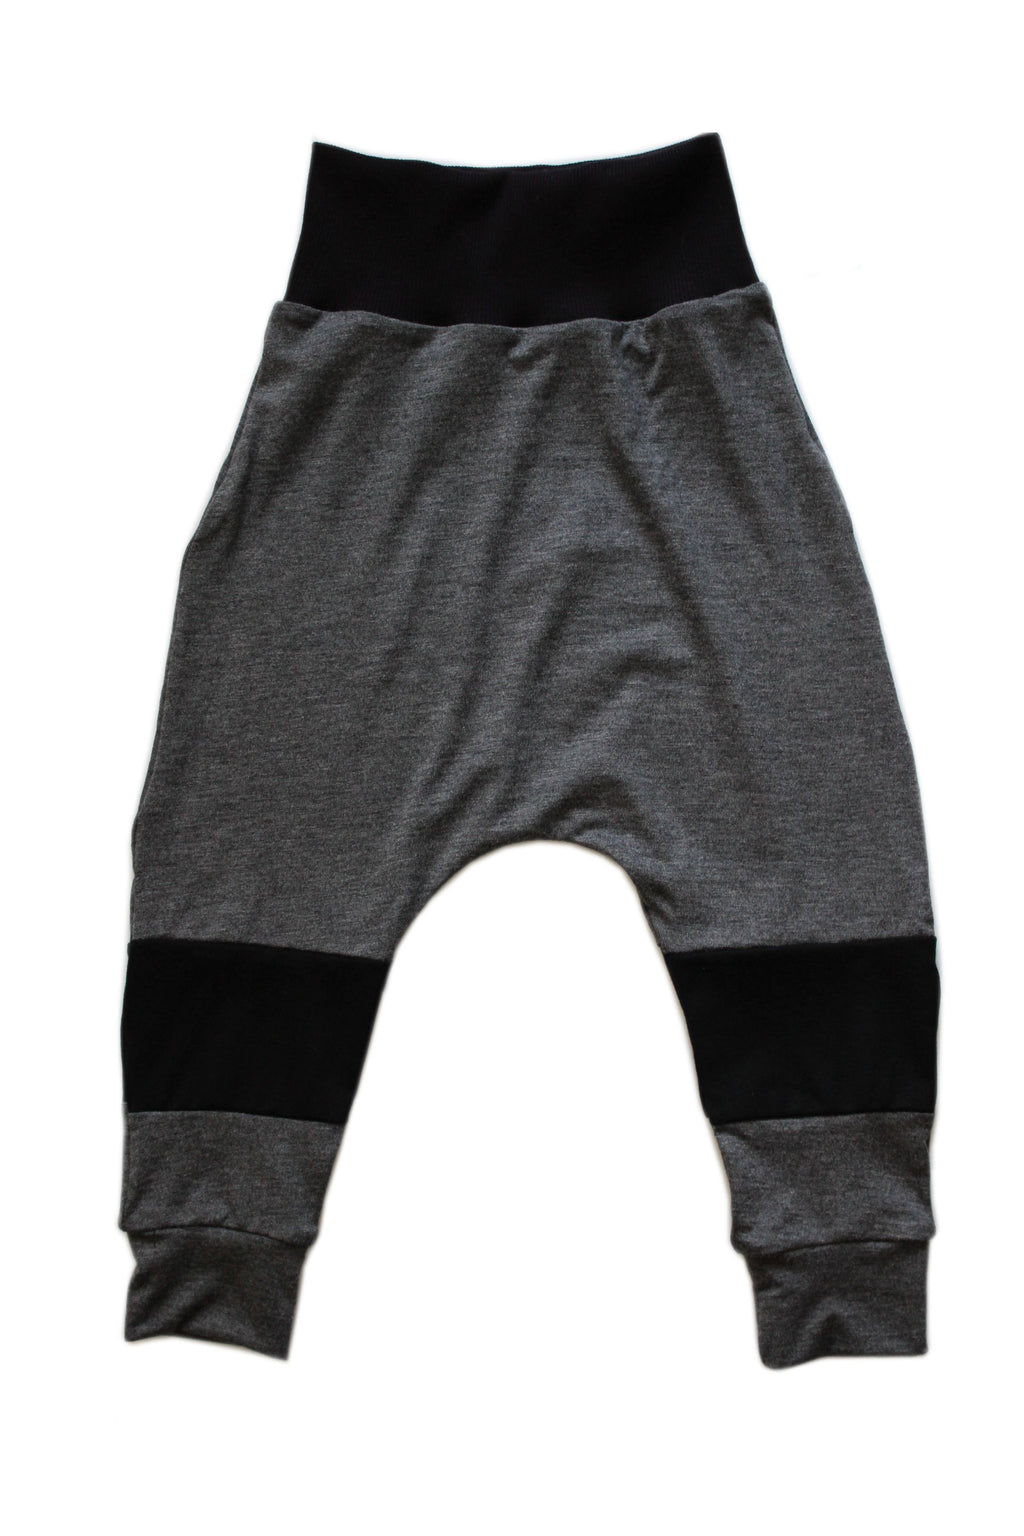 Panel Harem Pants - Grey & Black